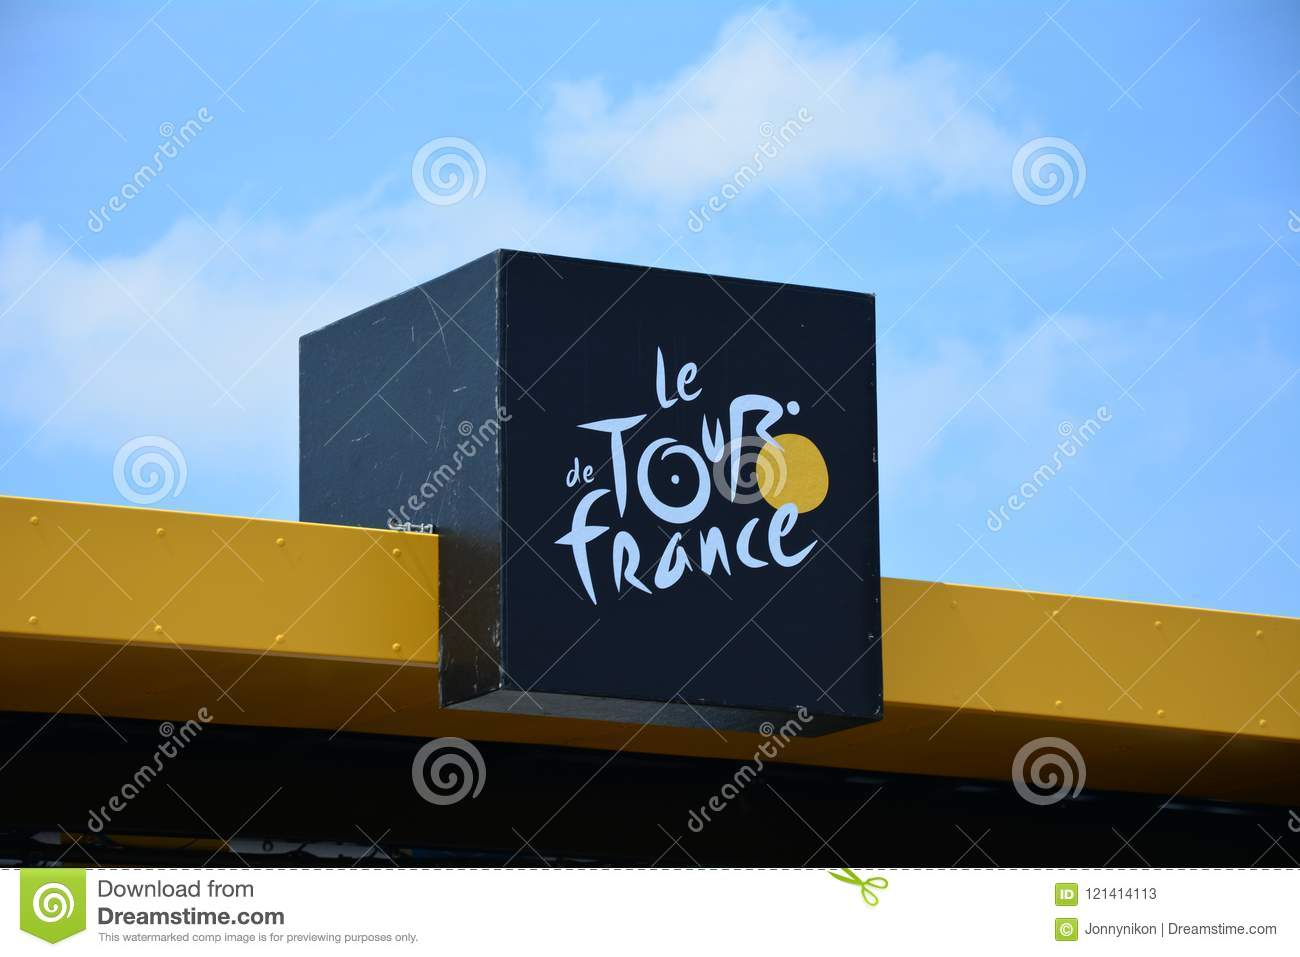 Mur De Logo tour de france 2018 editorial stock photo. image of logo - 121414113